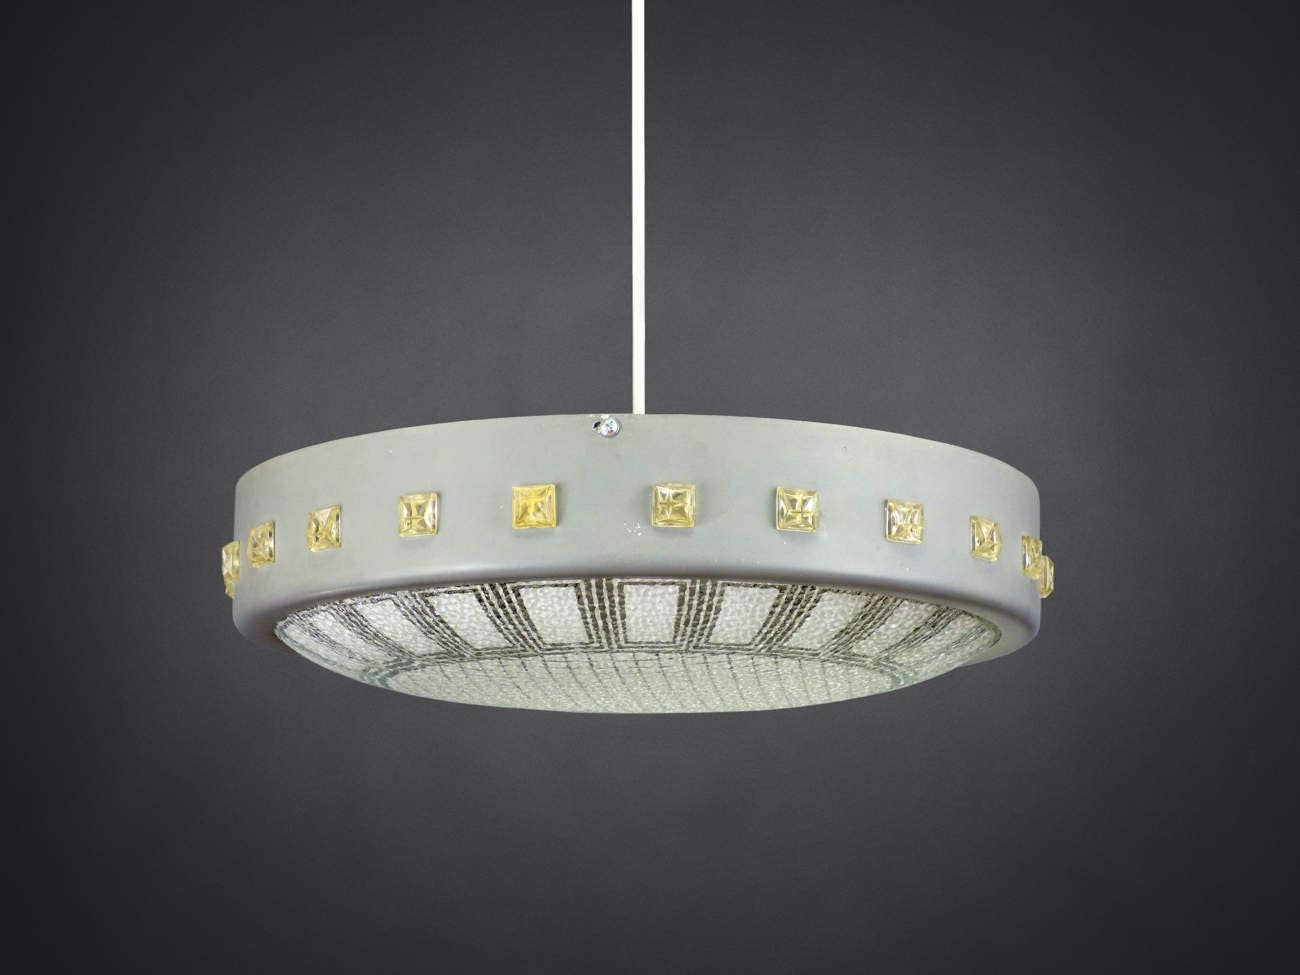 Pendant ceiling lamp ufo flying saucer style made in germany zoom arubaitofo Images